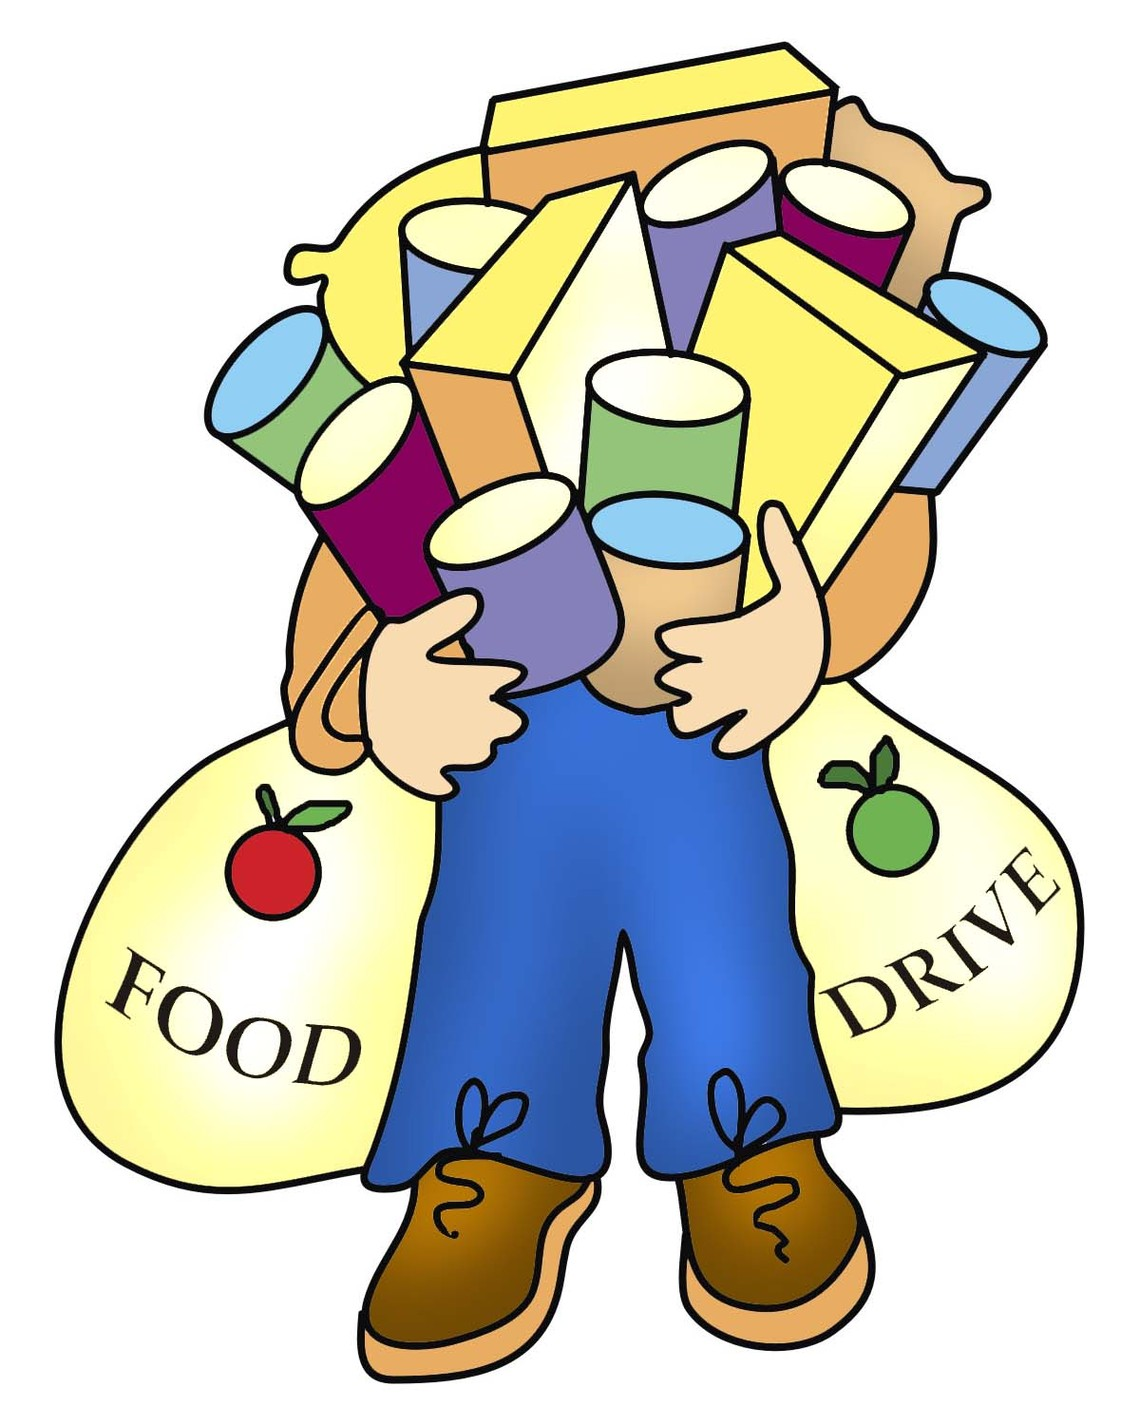 Free clipart images food bank graphic free stock Food Drive Clipart & Food Drive Clip Art Images - ClipartALL.com graphic free stock